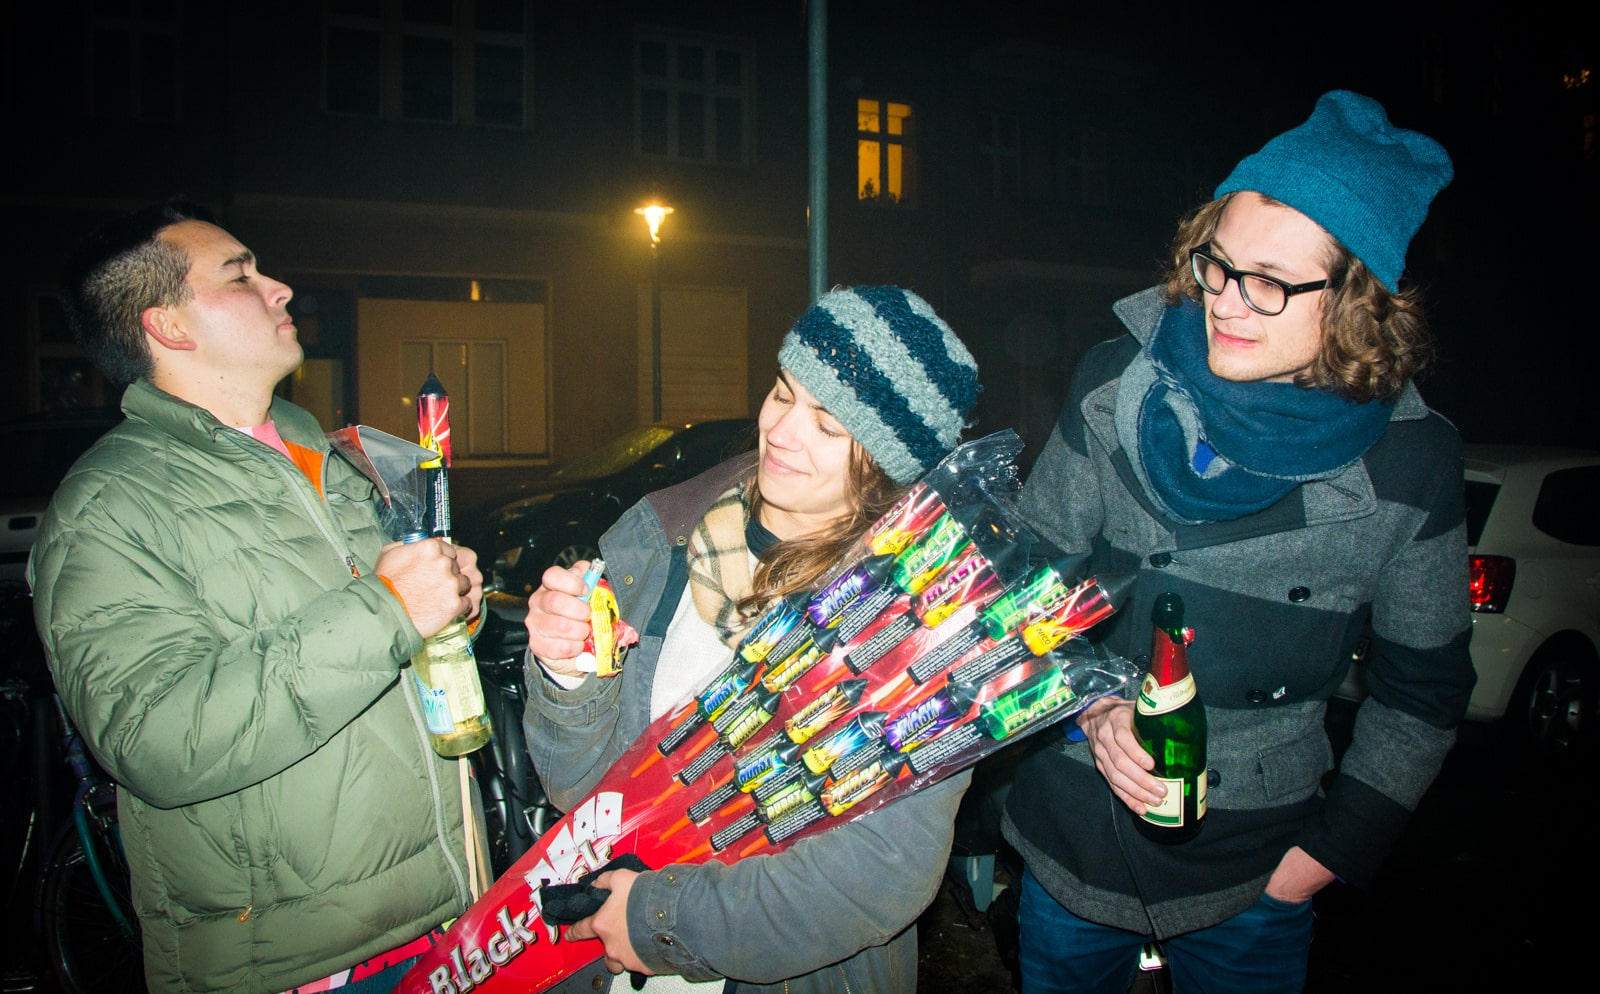 Drinking on street in Berlin to save money